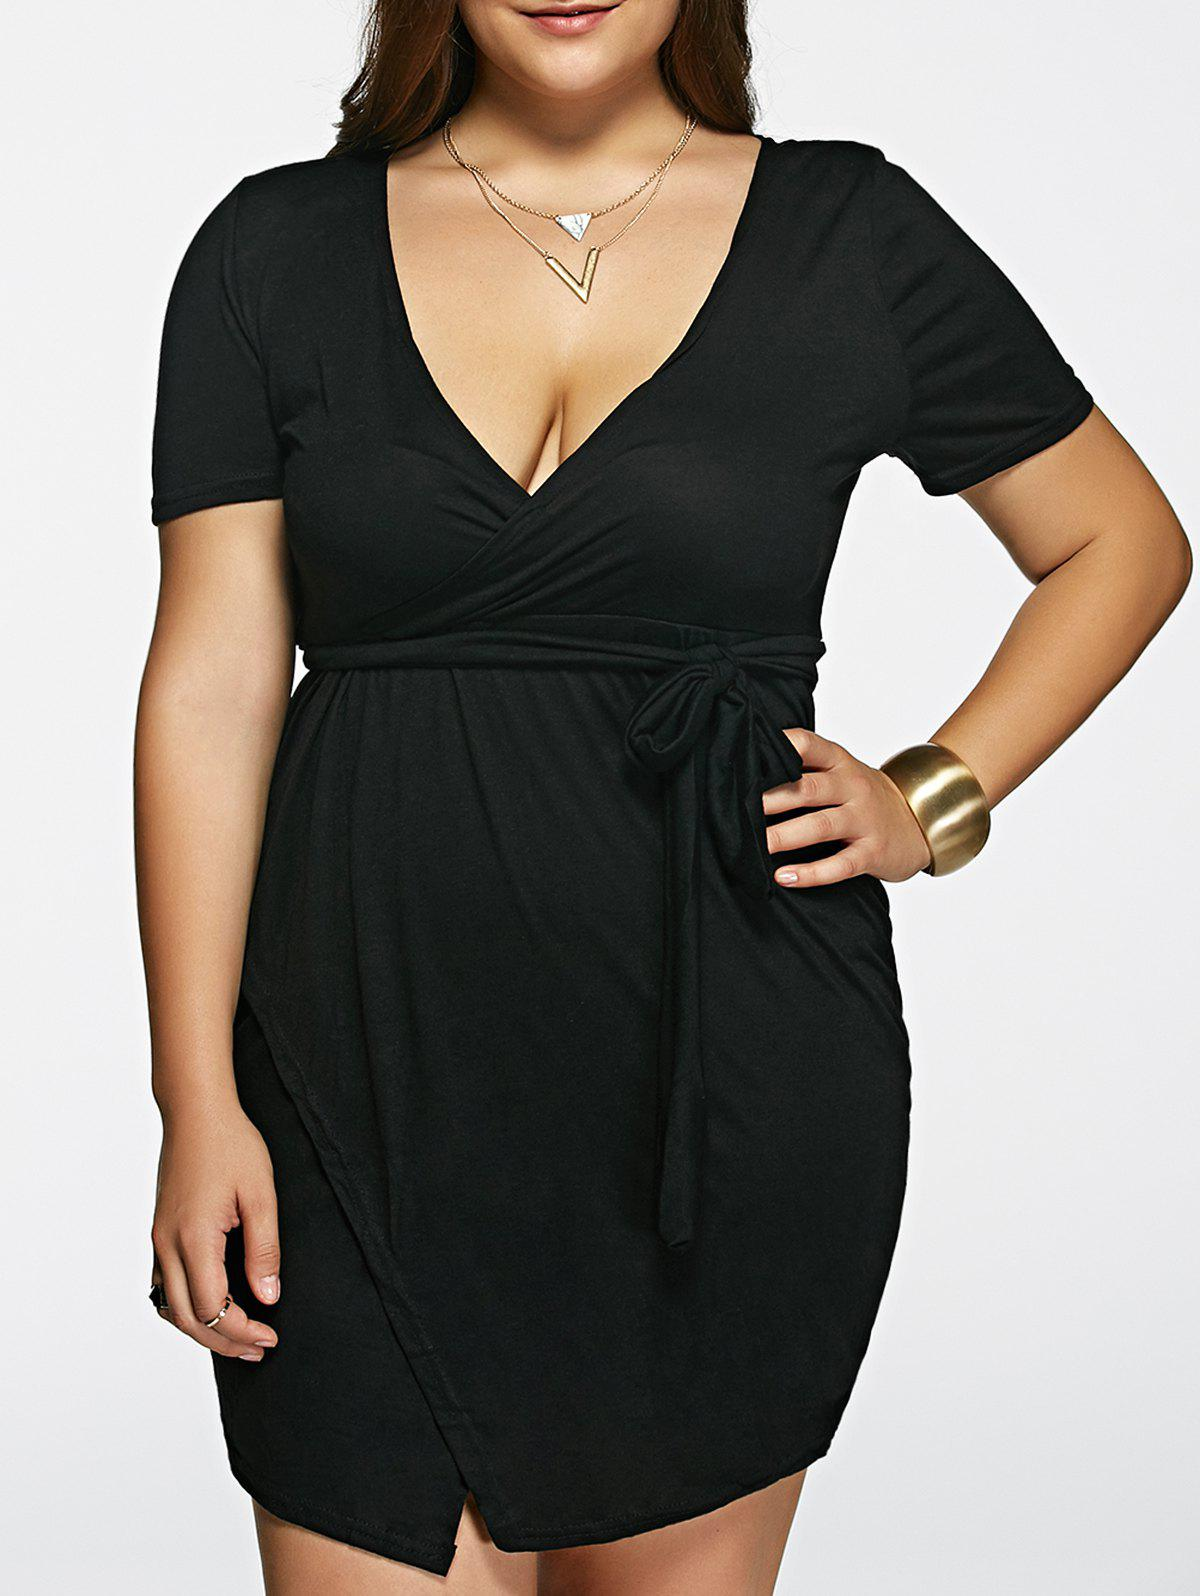 Stylish Women's Plunging Neck Solid Color Short Sleeve Black Plus Size Dress